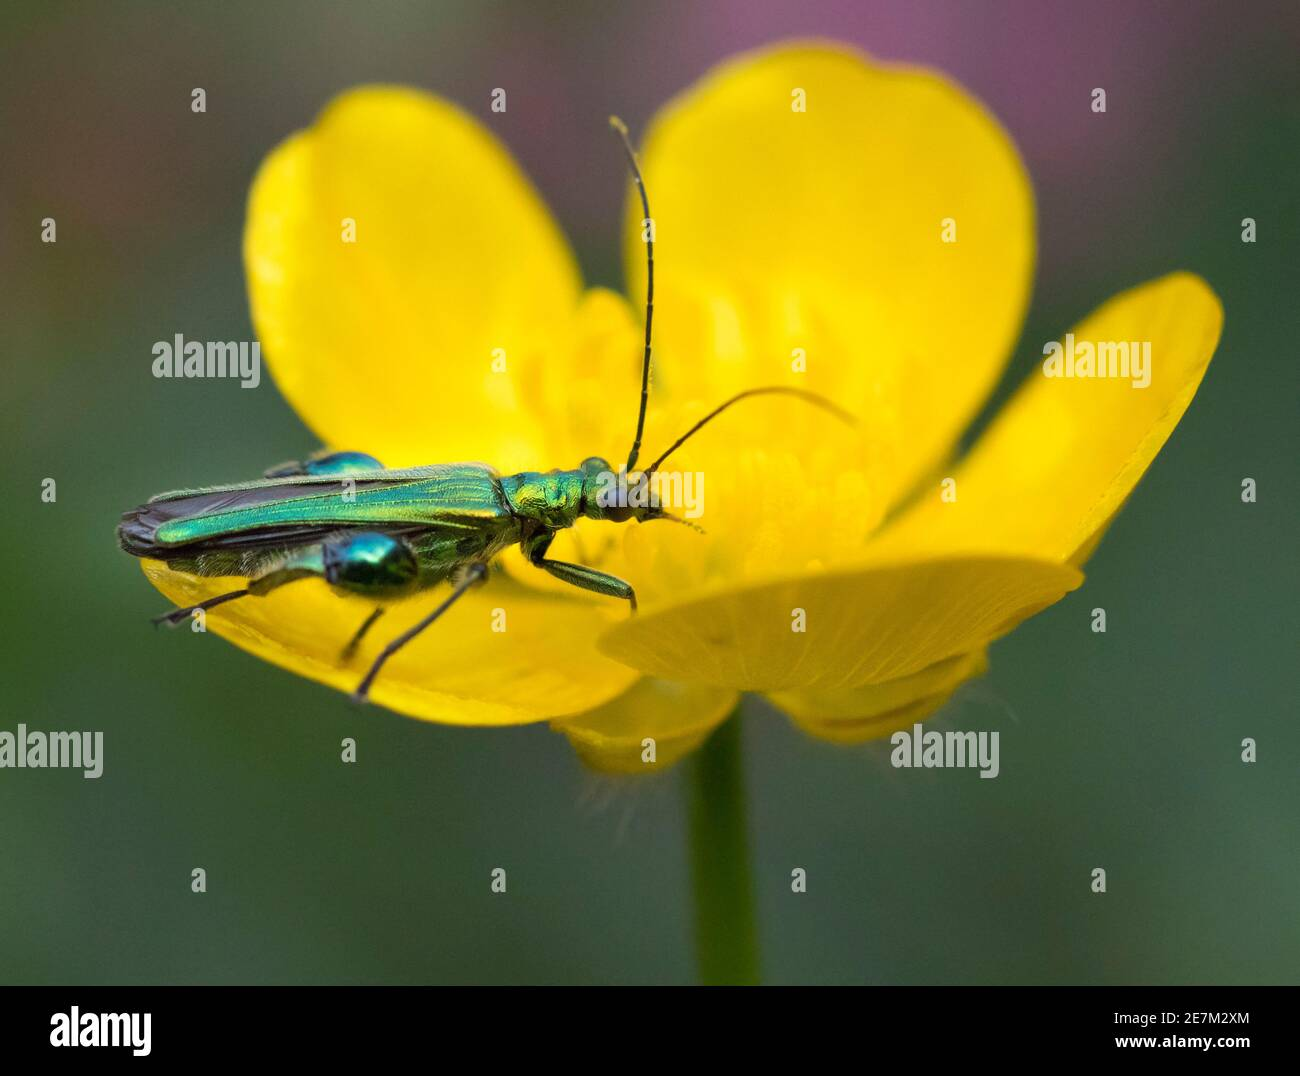 Thick-legged Flower Beetle (Oedemera nobilis) on buttercup in garden, West Sussex, UK. June Stock Photo